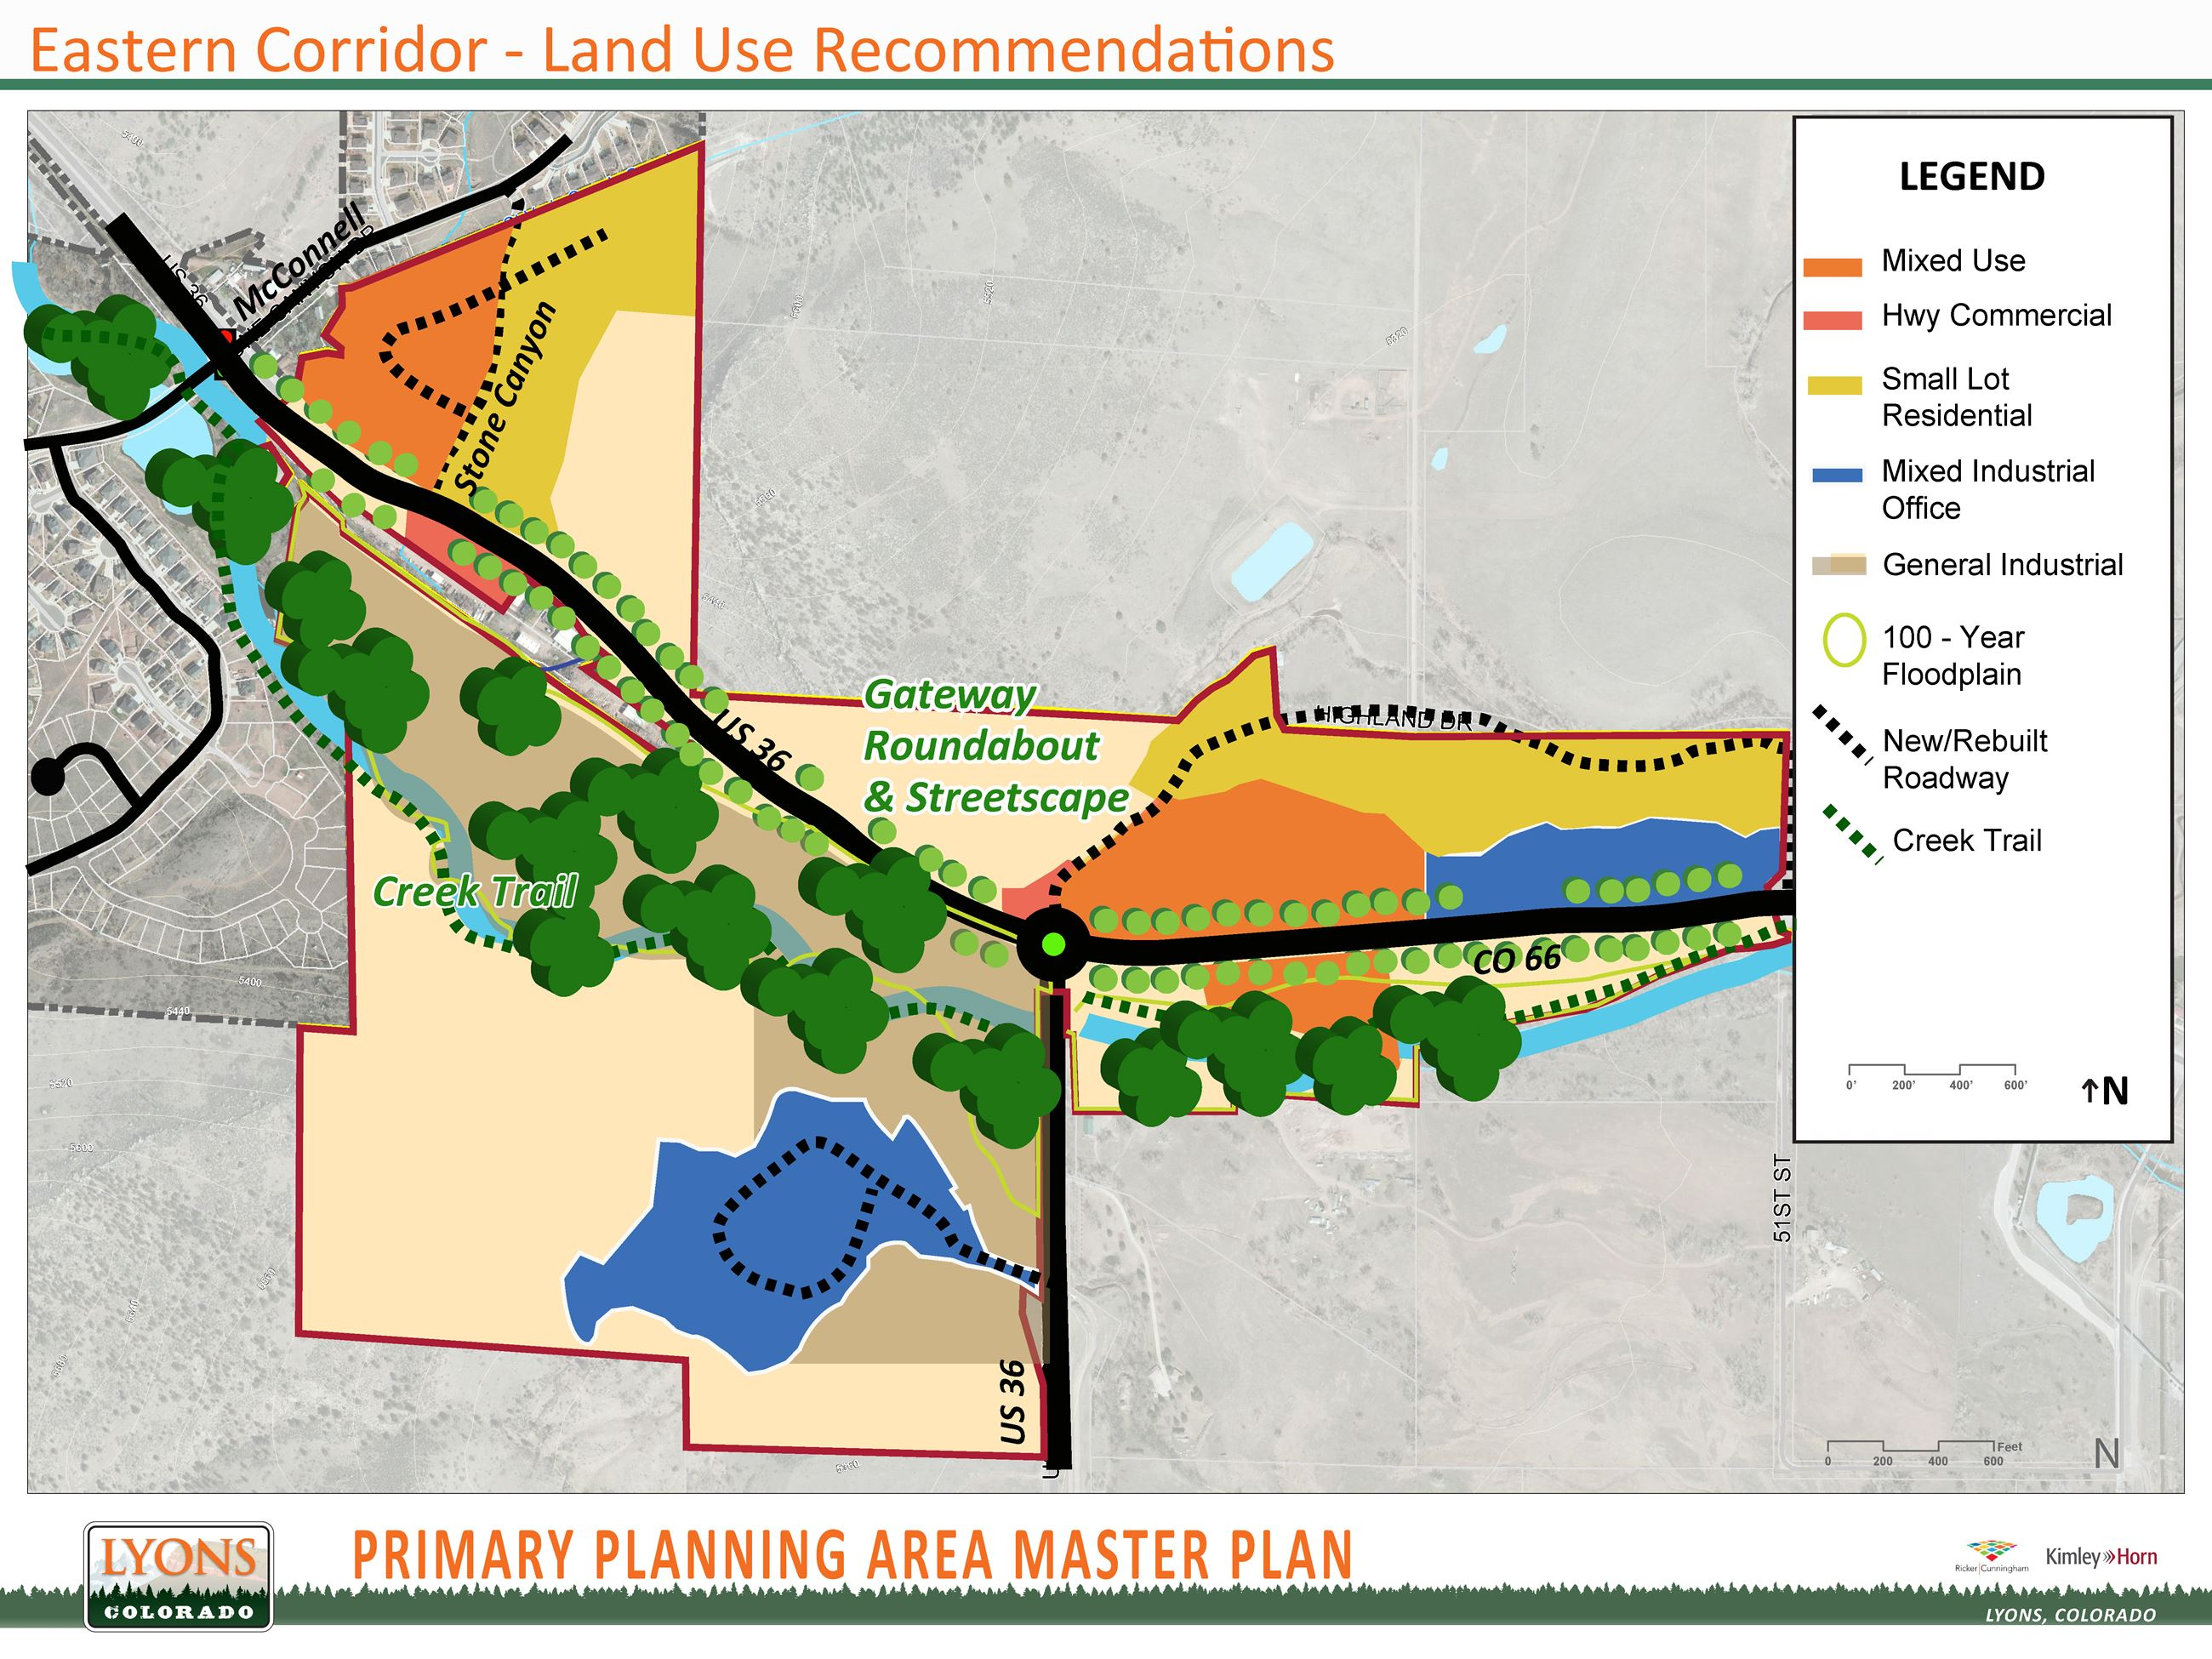 EC_Land Use Recomendations